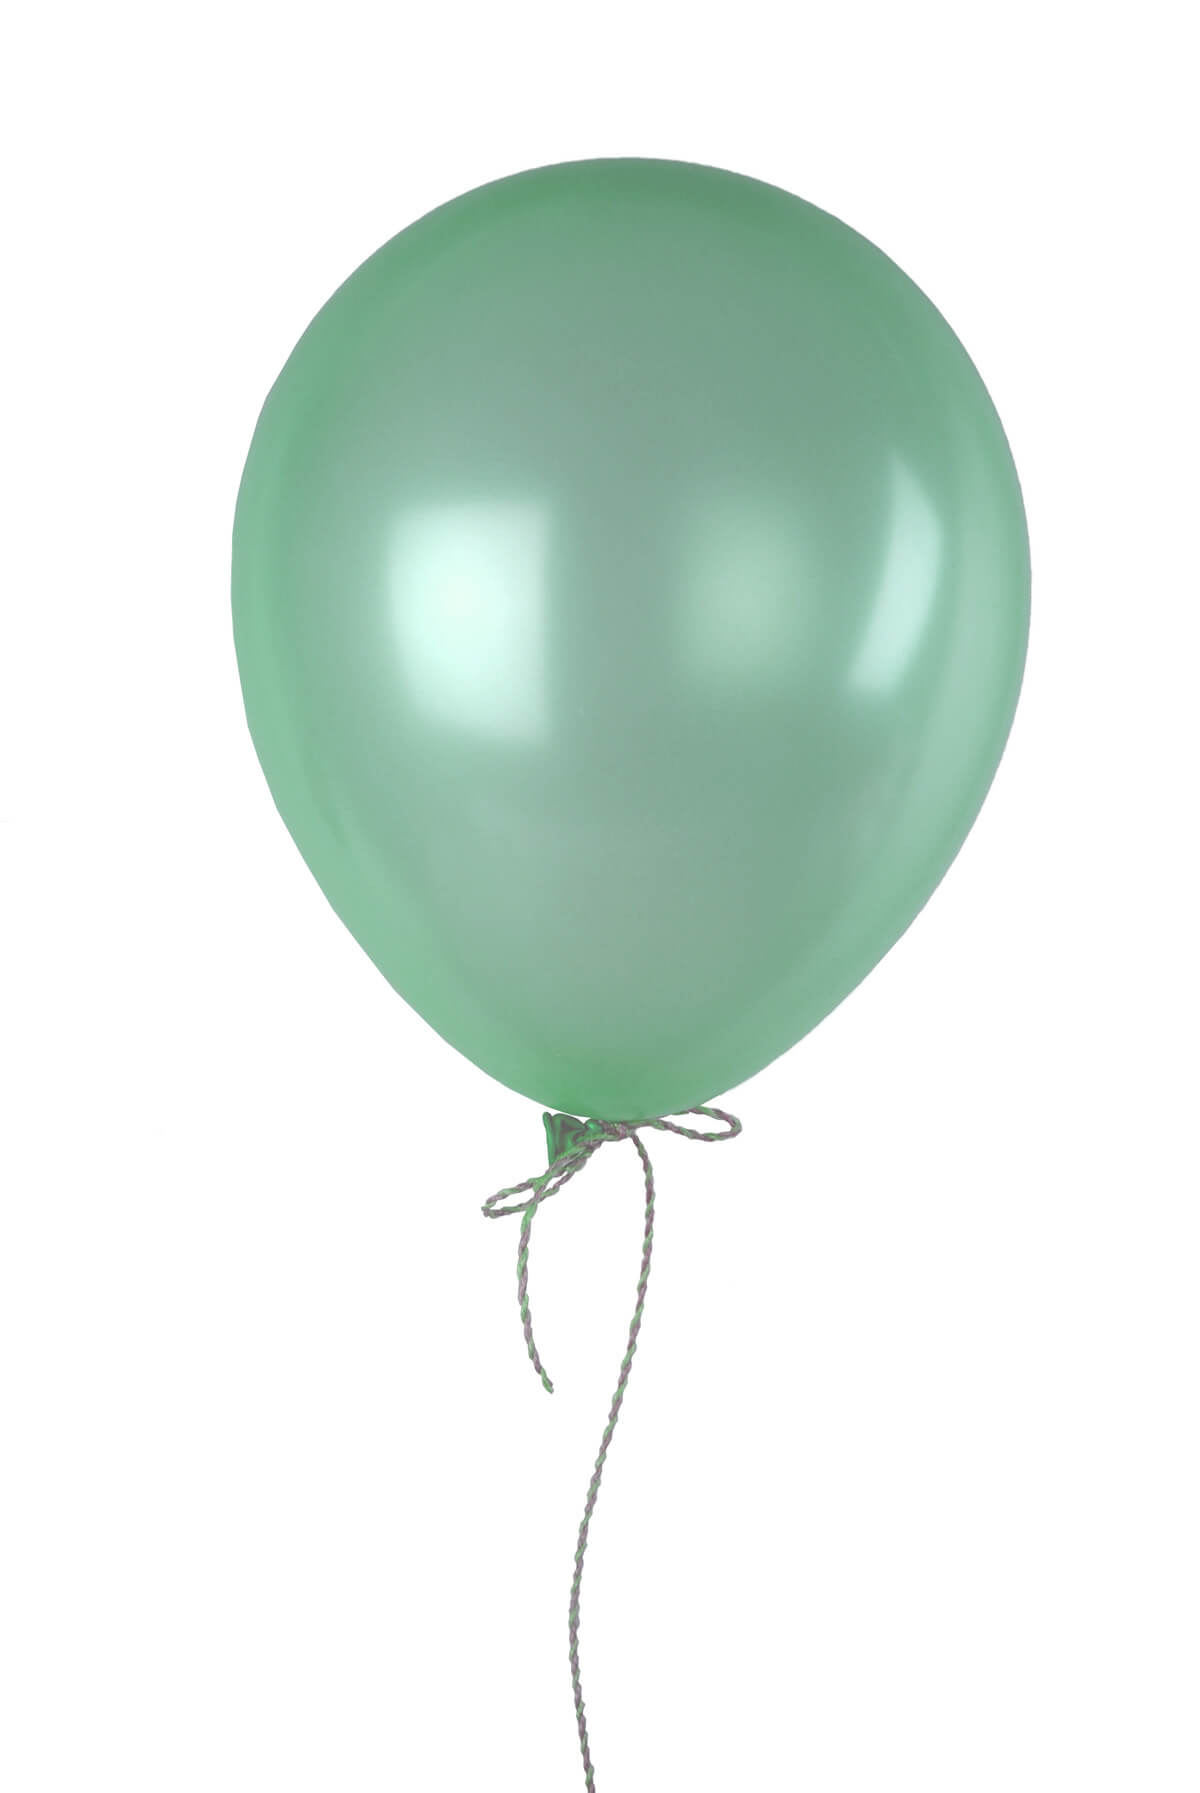 Balloons Sea Foam Green 12in | Pack of 100